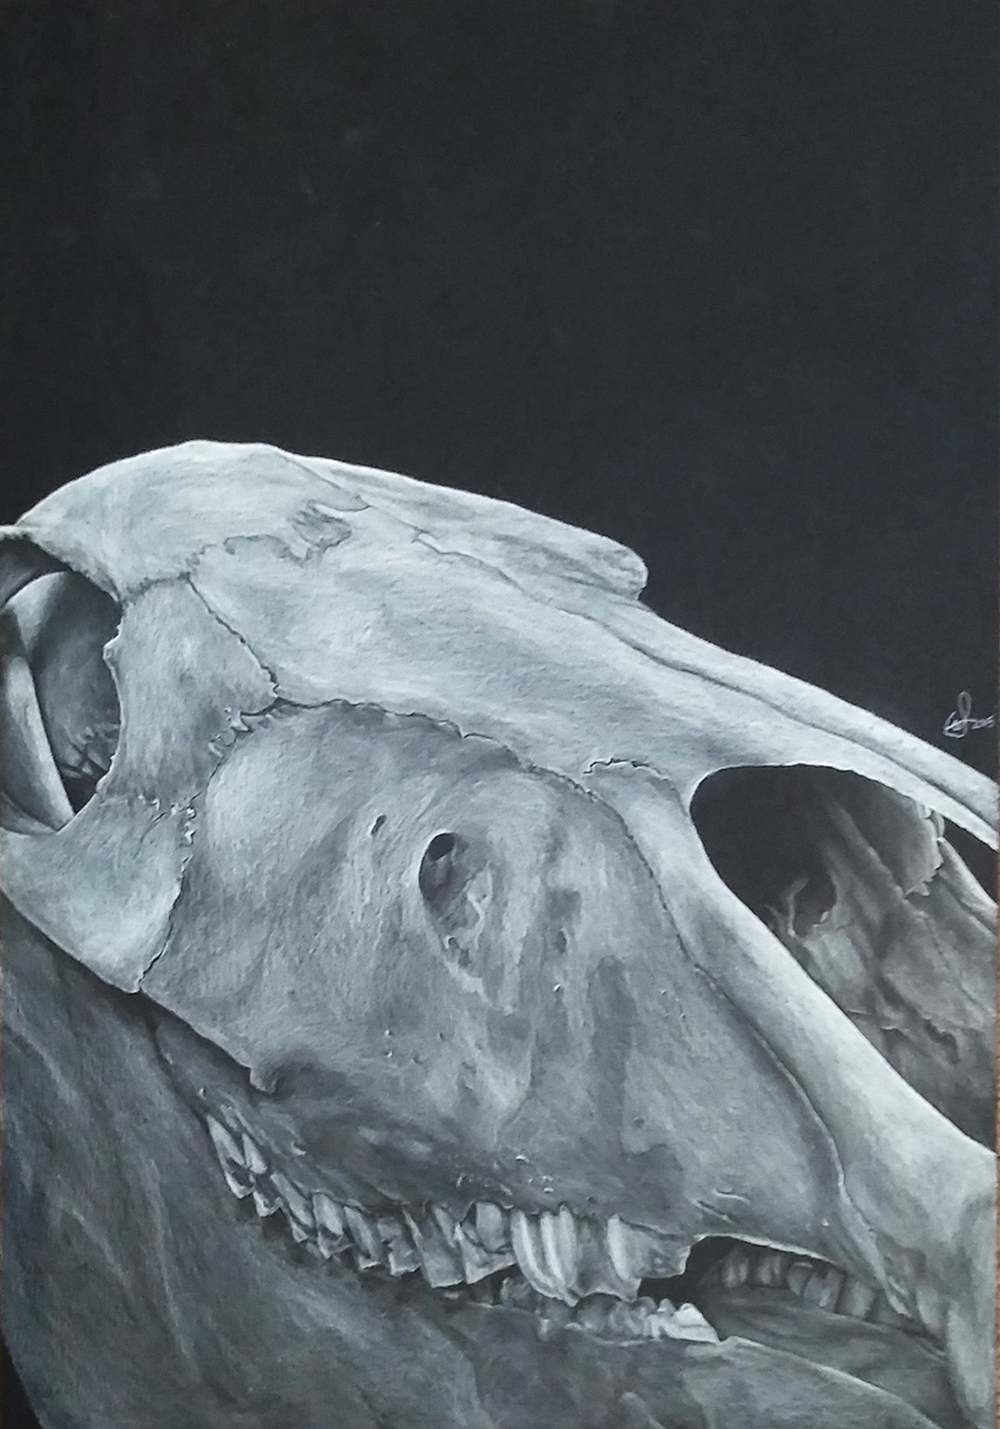 Gregory Stock  'Horse Skull'  Pencil on paper  42 x 29,7 cm